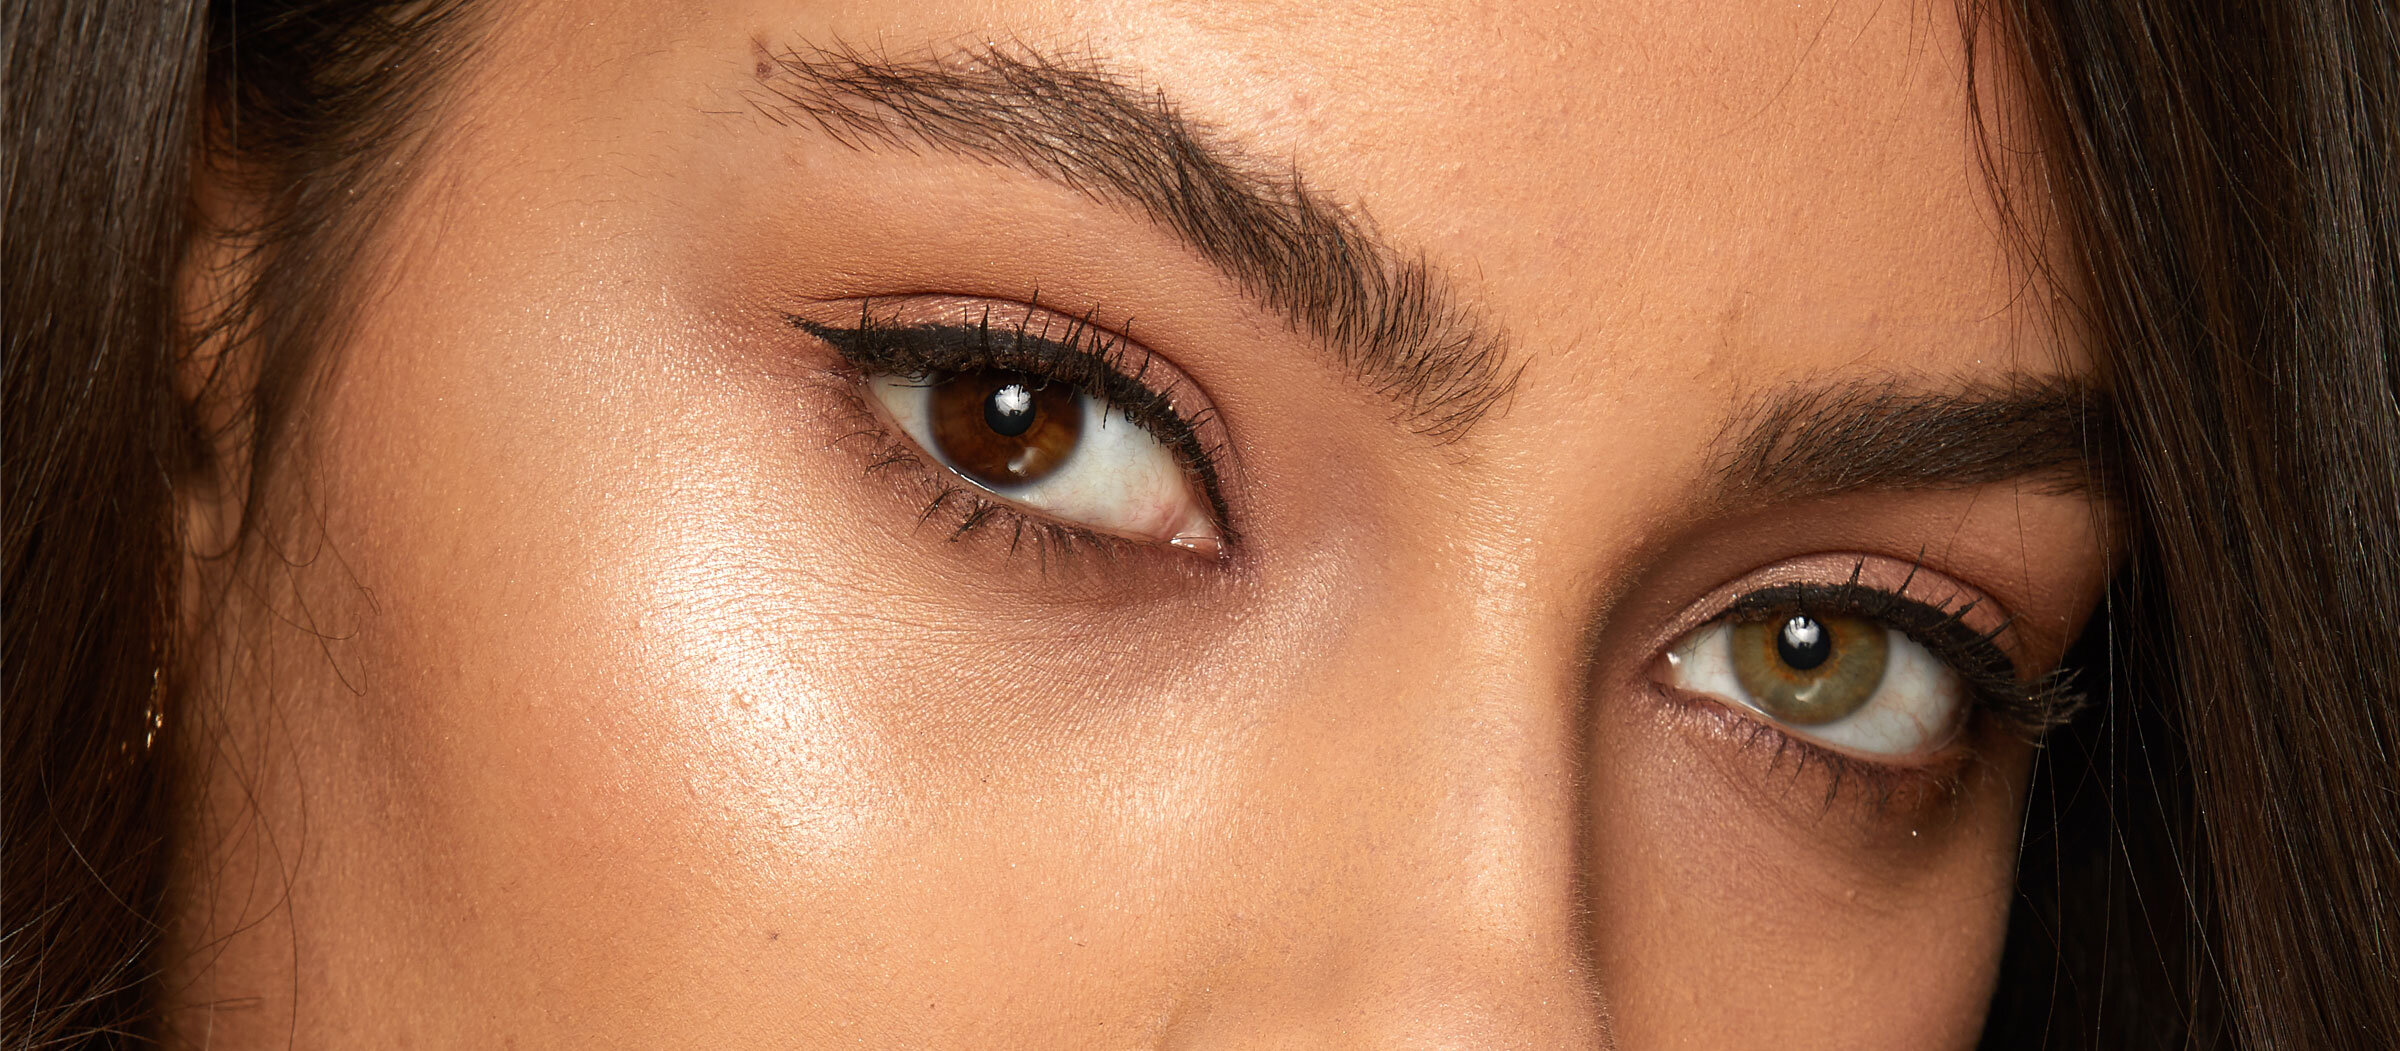 Close up image of model's eyebrows and eyes